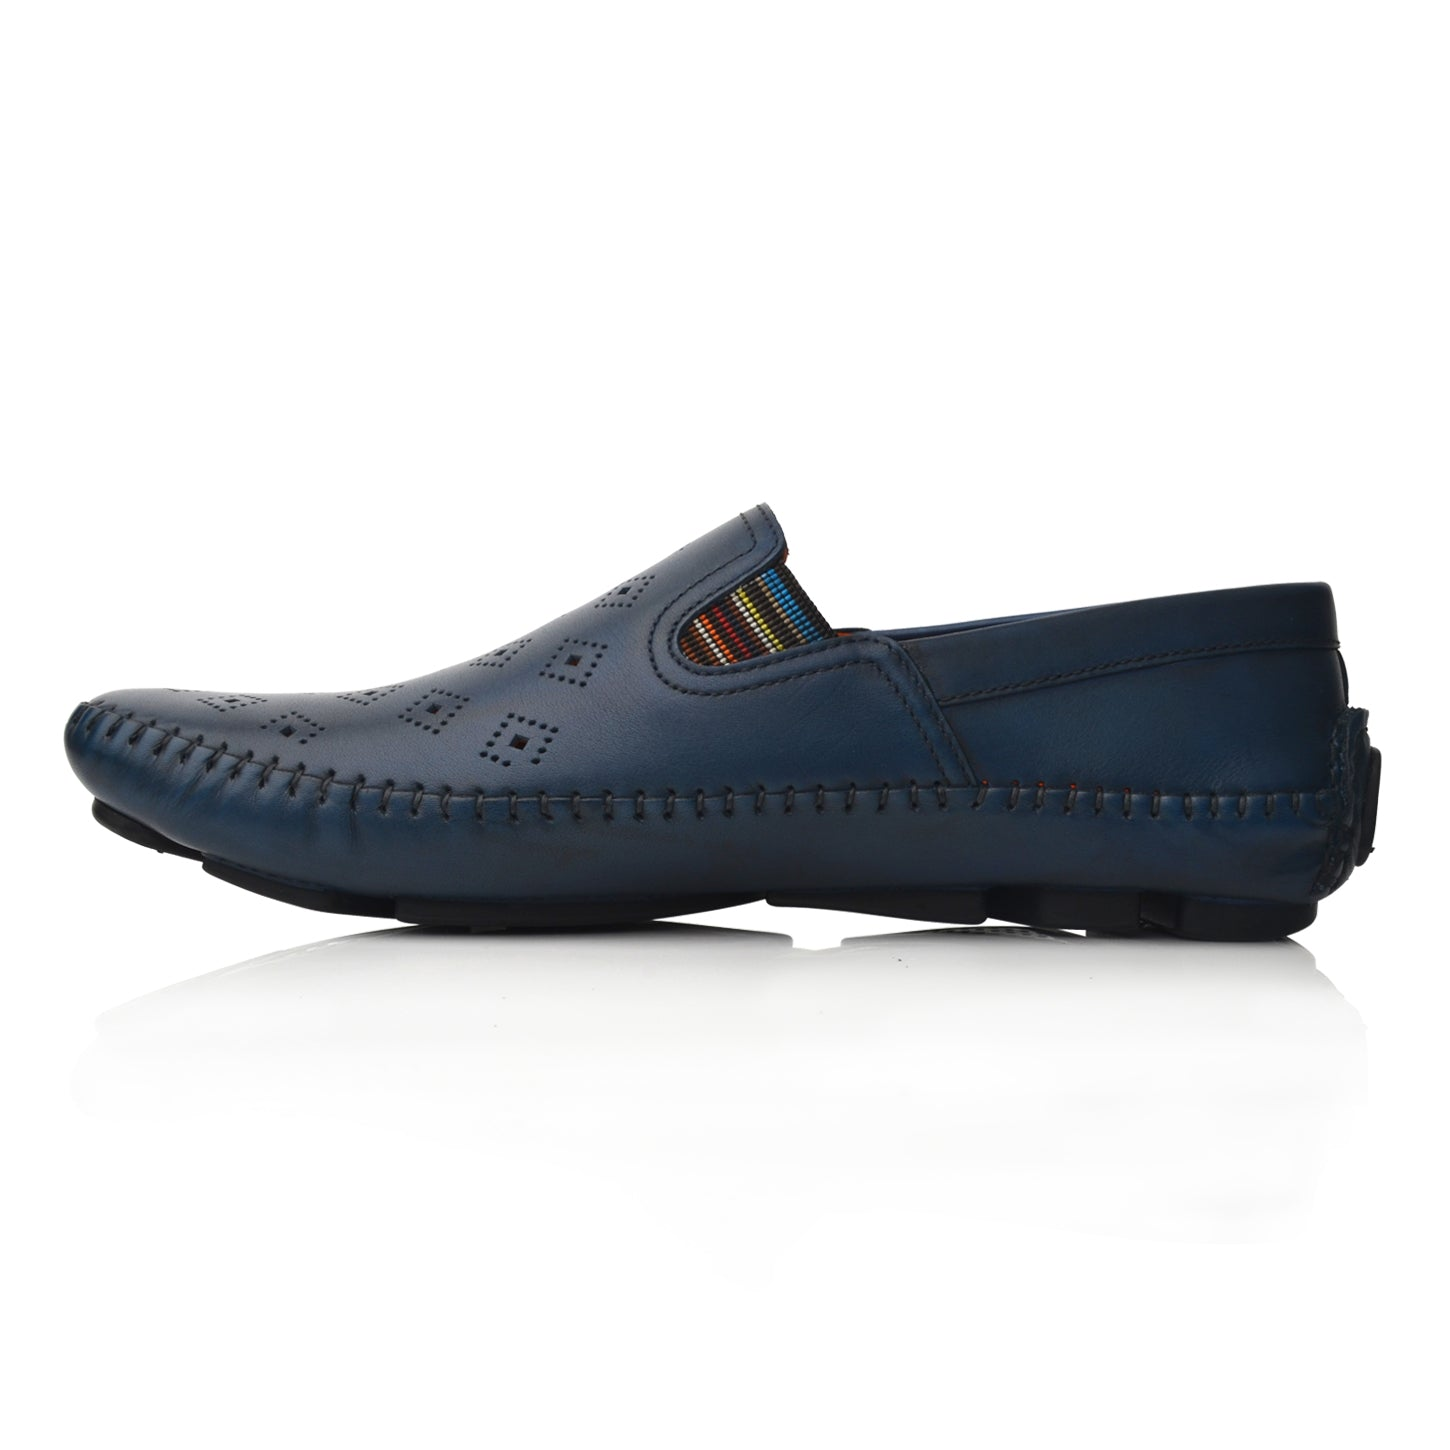 Lm064 Language Drake Men's Blue Casual Loafers